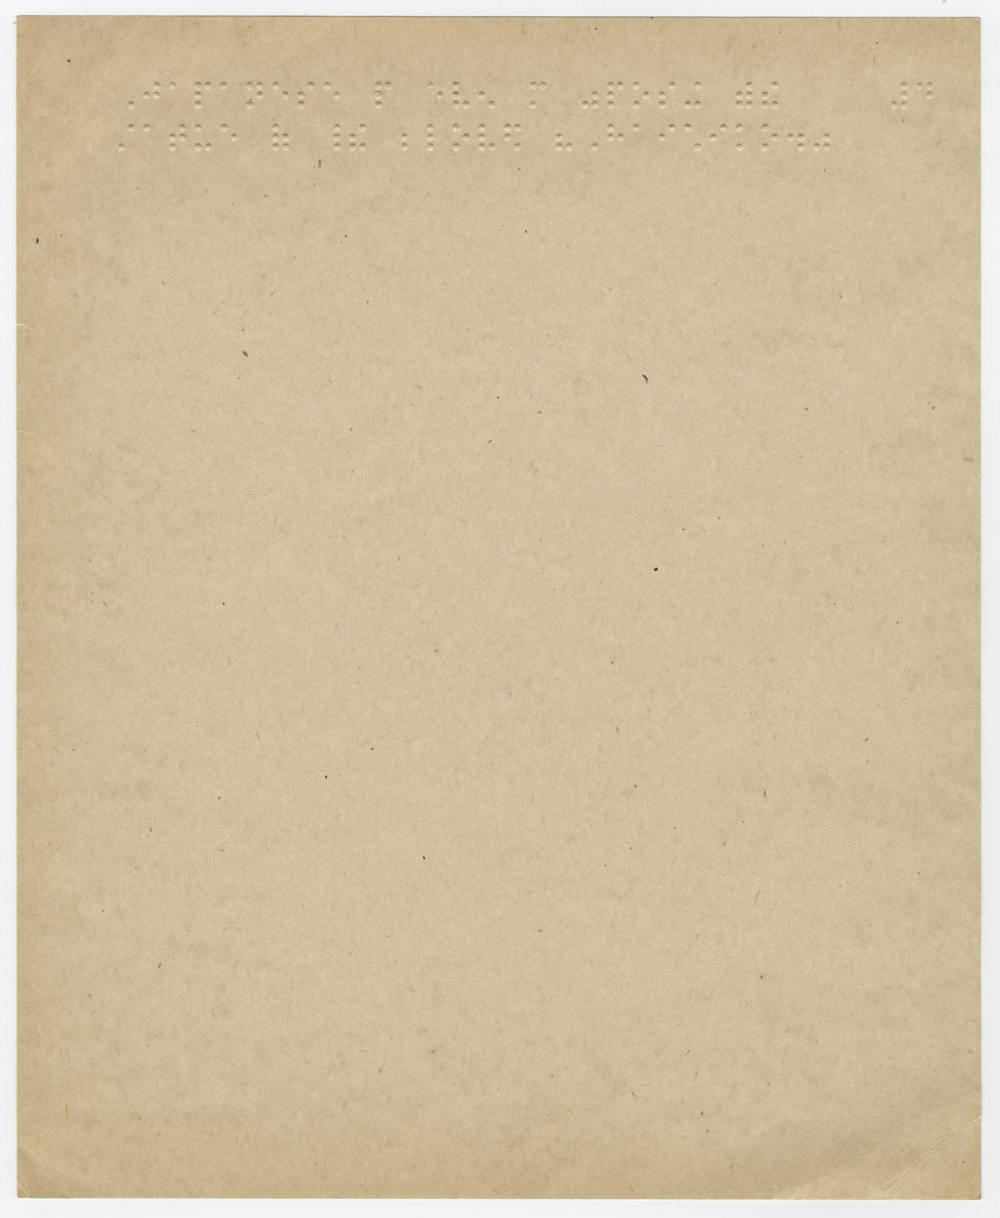 A Page of Braille Owned by Helen Keller